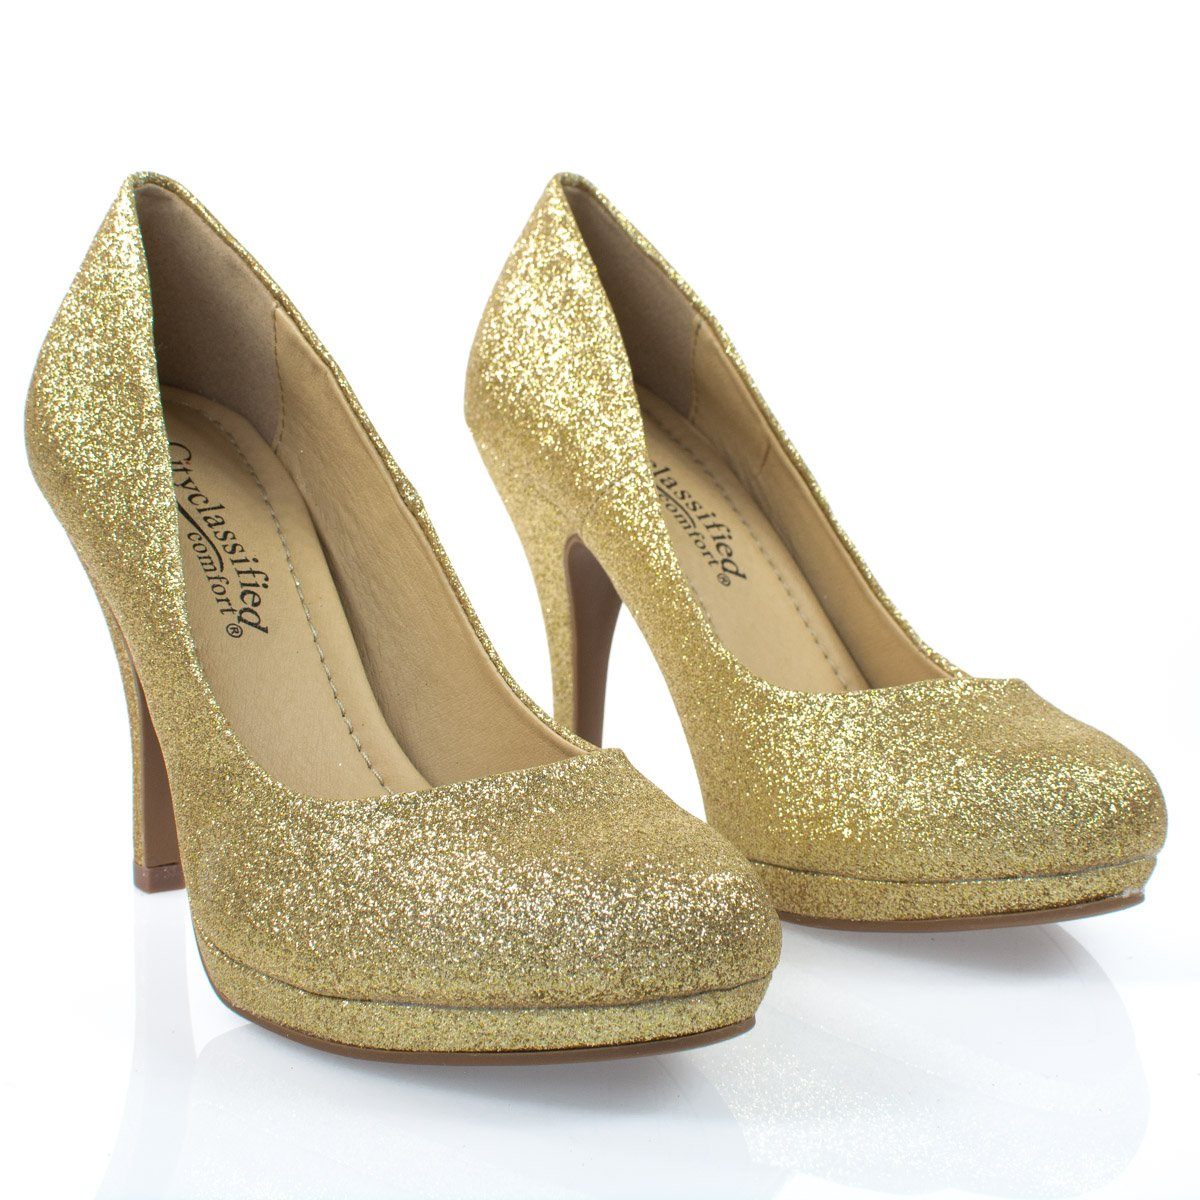 Women's Classic Dress Pump W Extra Cushioned in Sole Round Toe & Platform,Goldglt,8 by City Classified (Image #3)